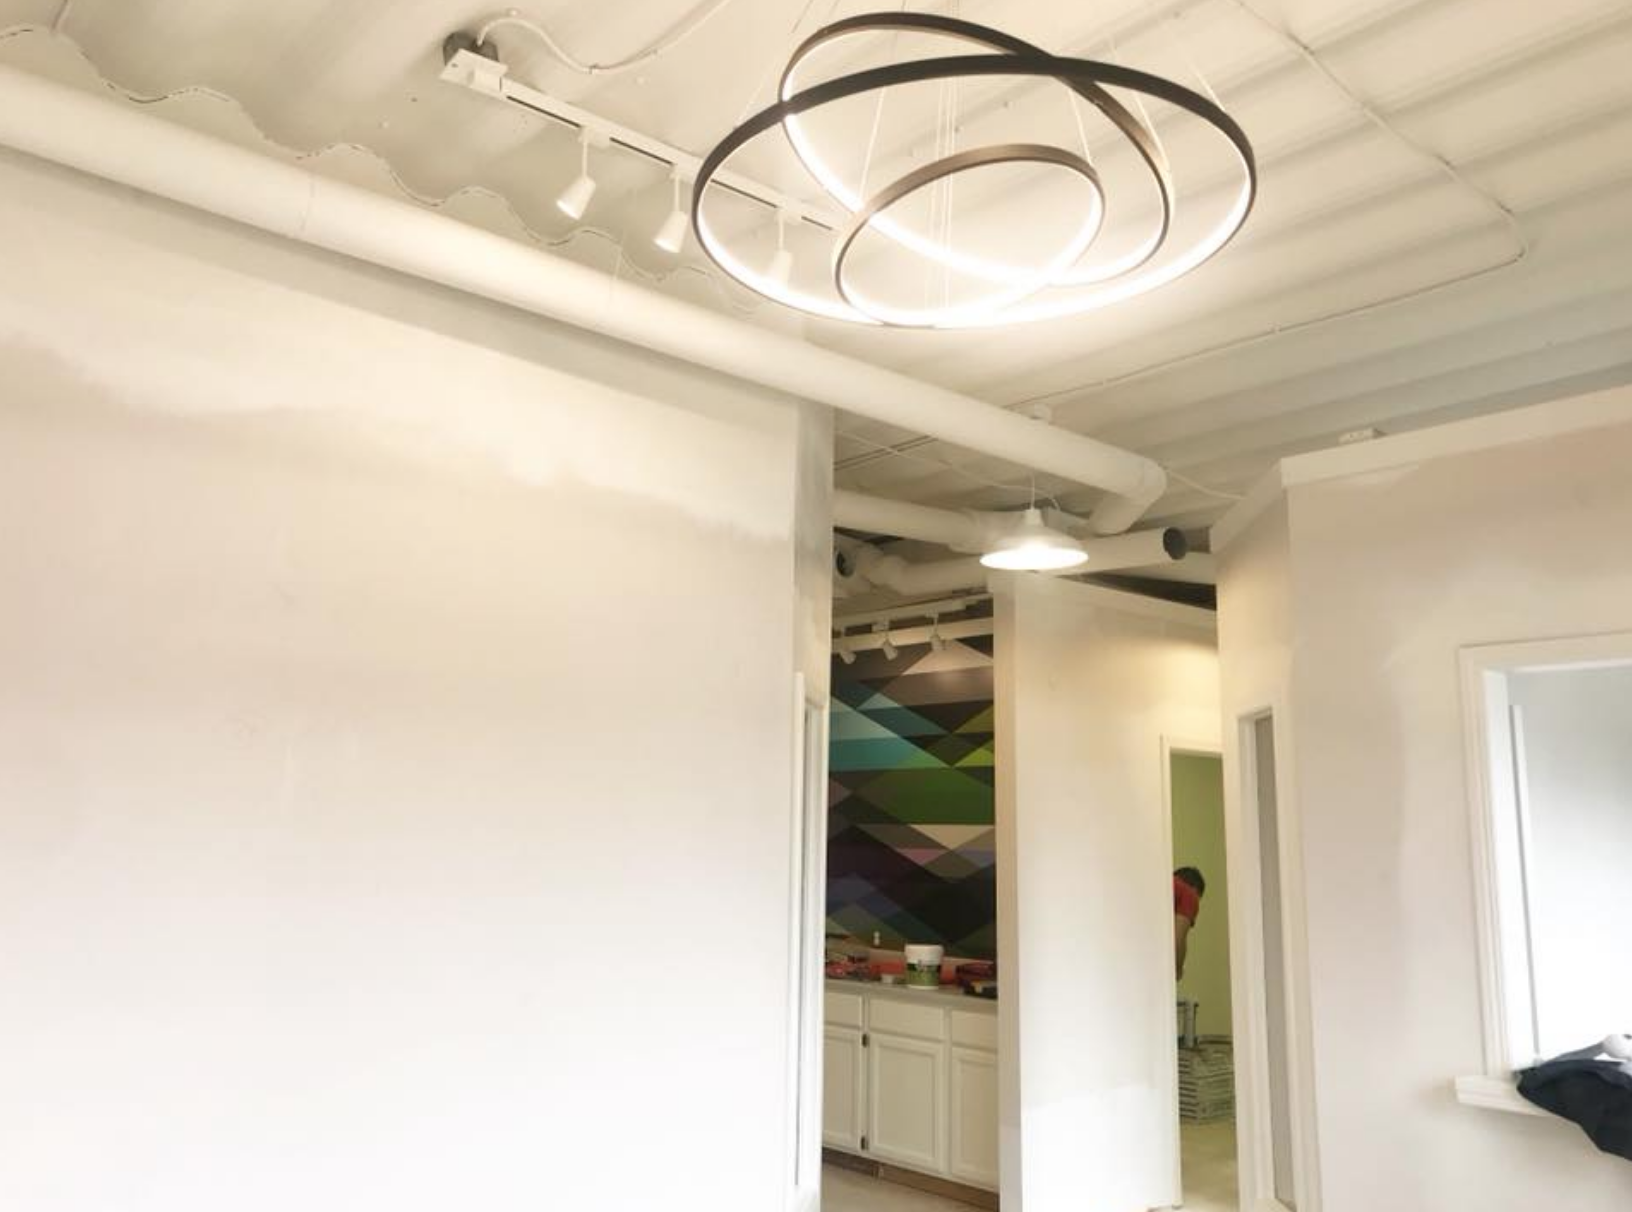 DURING - lighting fixtures and wallcovering installed